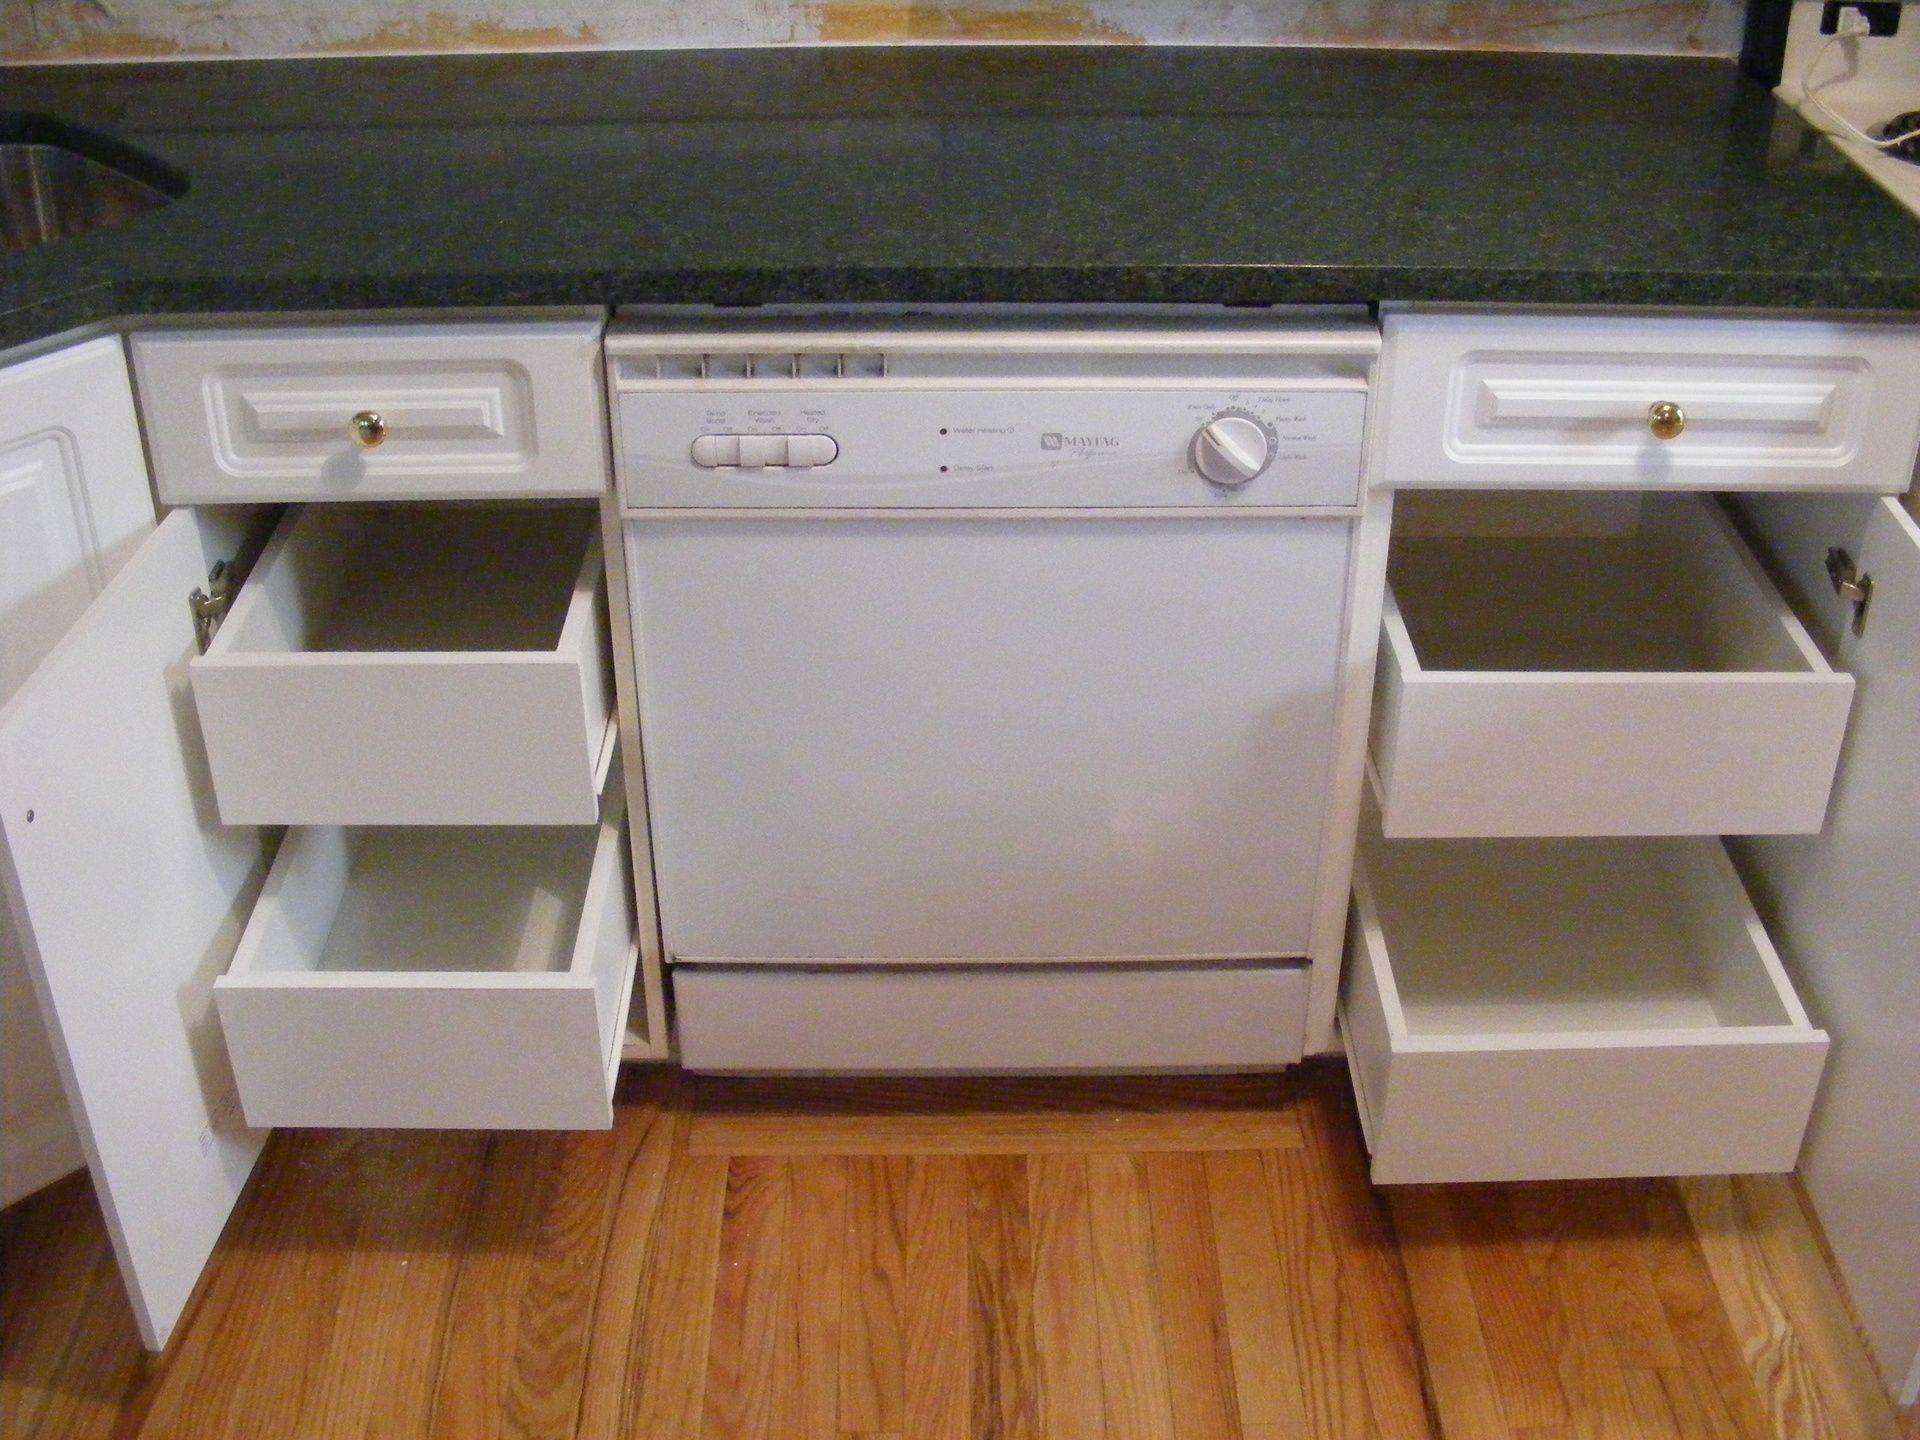 Diy Reface Kitchen Cabinets Do It Yourself Kitchen Cabinet Refacing Diy 902 448 2108